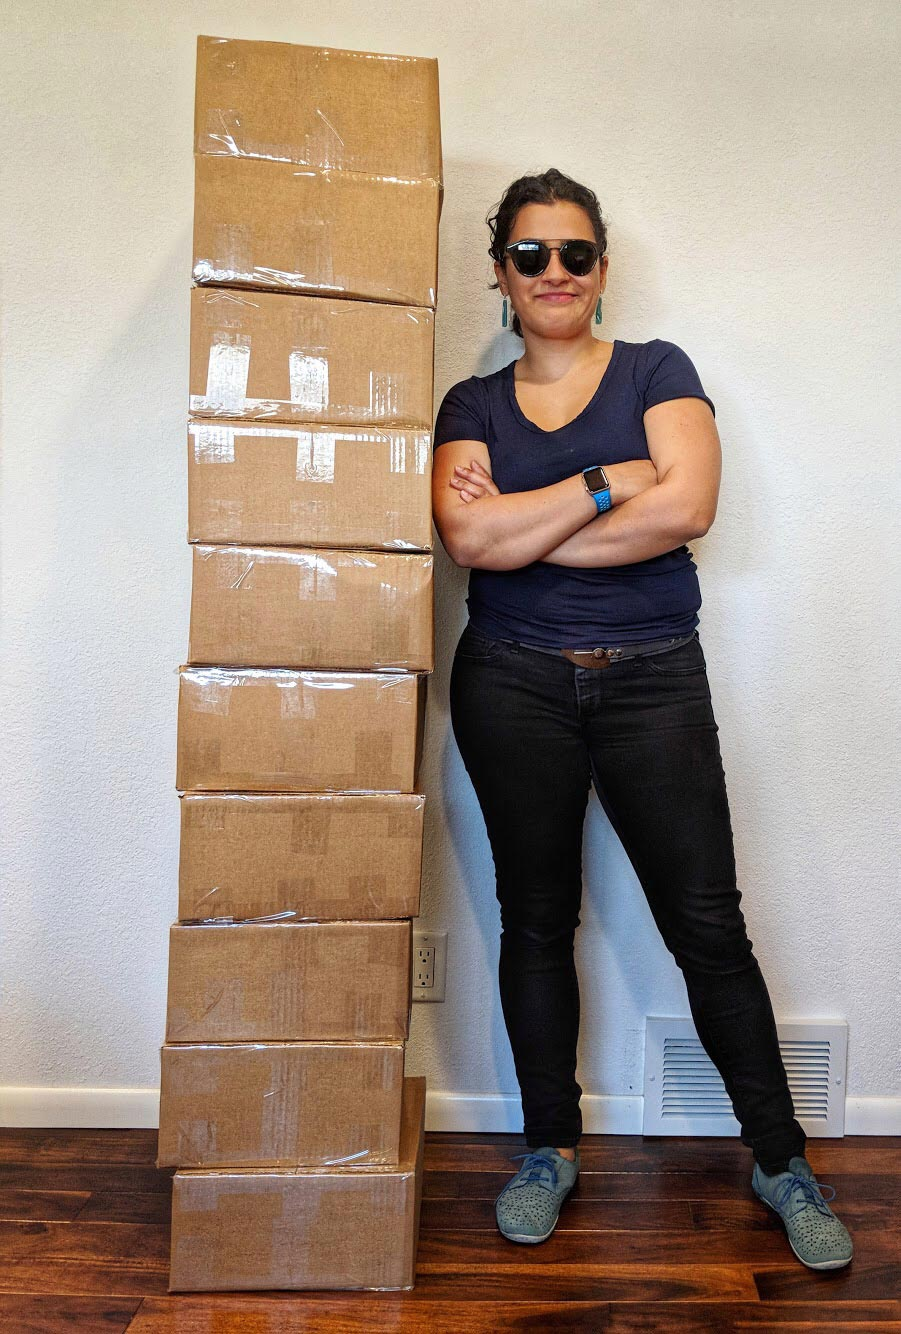 dang, look at that tower of boxes! that's a lotta belts!!